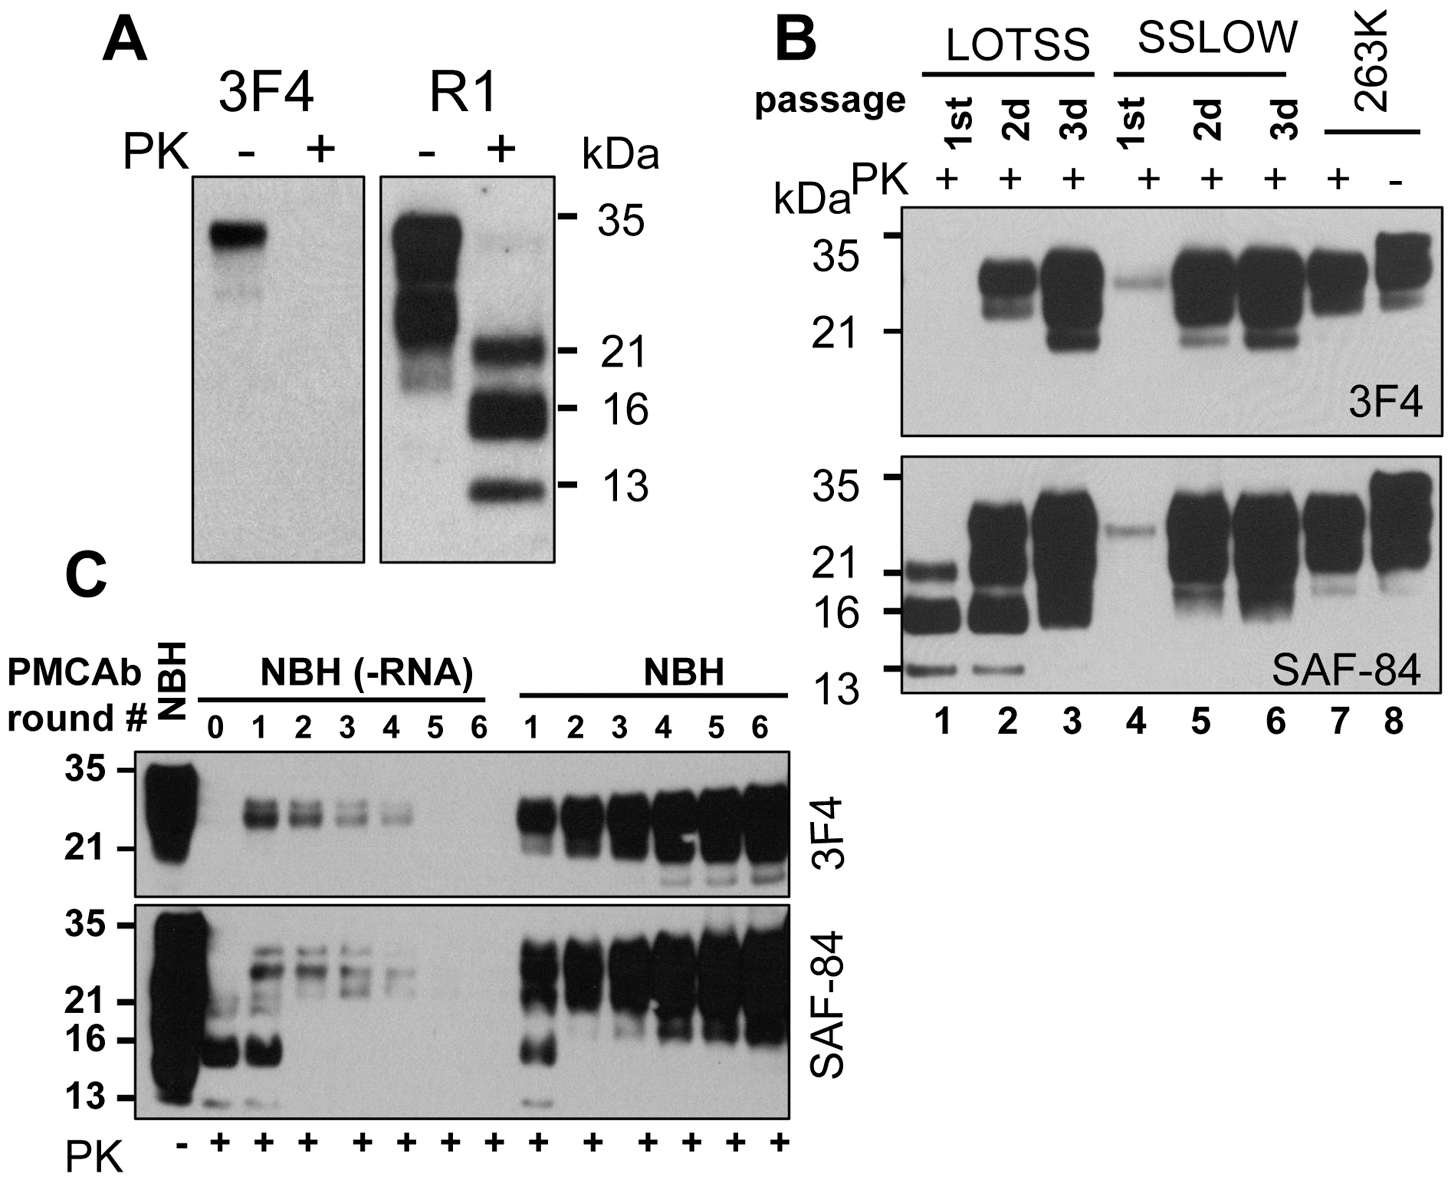 Serial passages of rPrP fibrils and <i>de novo</i> generation of PrP<sup>Sc</sup> in Syrian hamsters.